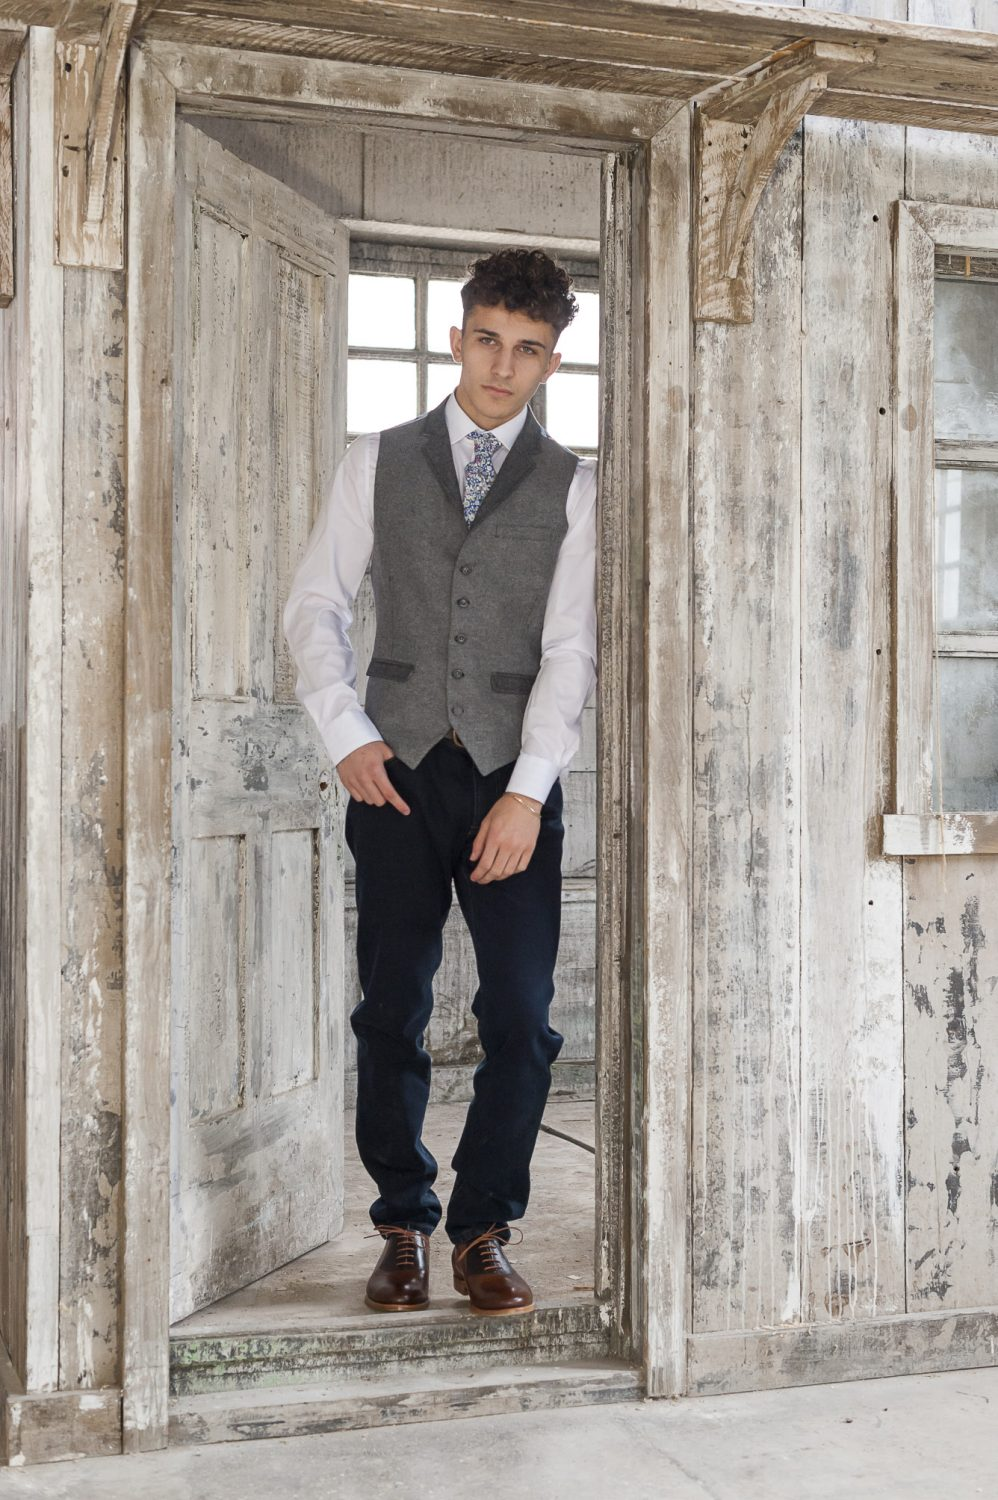 Claudio Lugli grey waist coat & jacket, £275, Profuomo brown leather belt, £60, MMX jeans, £129, Liberty print tie, £29.50, Olymp white shirt, £59.50, Barker Harry shoes, £250, County Clothes, Canterbury 01227 765294 / Tenterden 01580 765159 / Reigate 01737 249224 countyclothesmenswear.co.uk